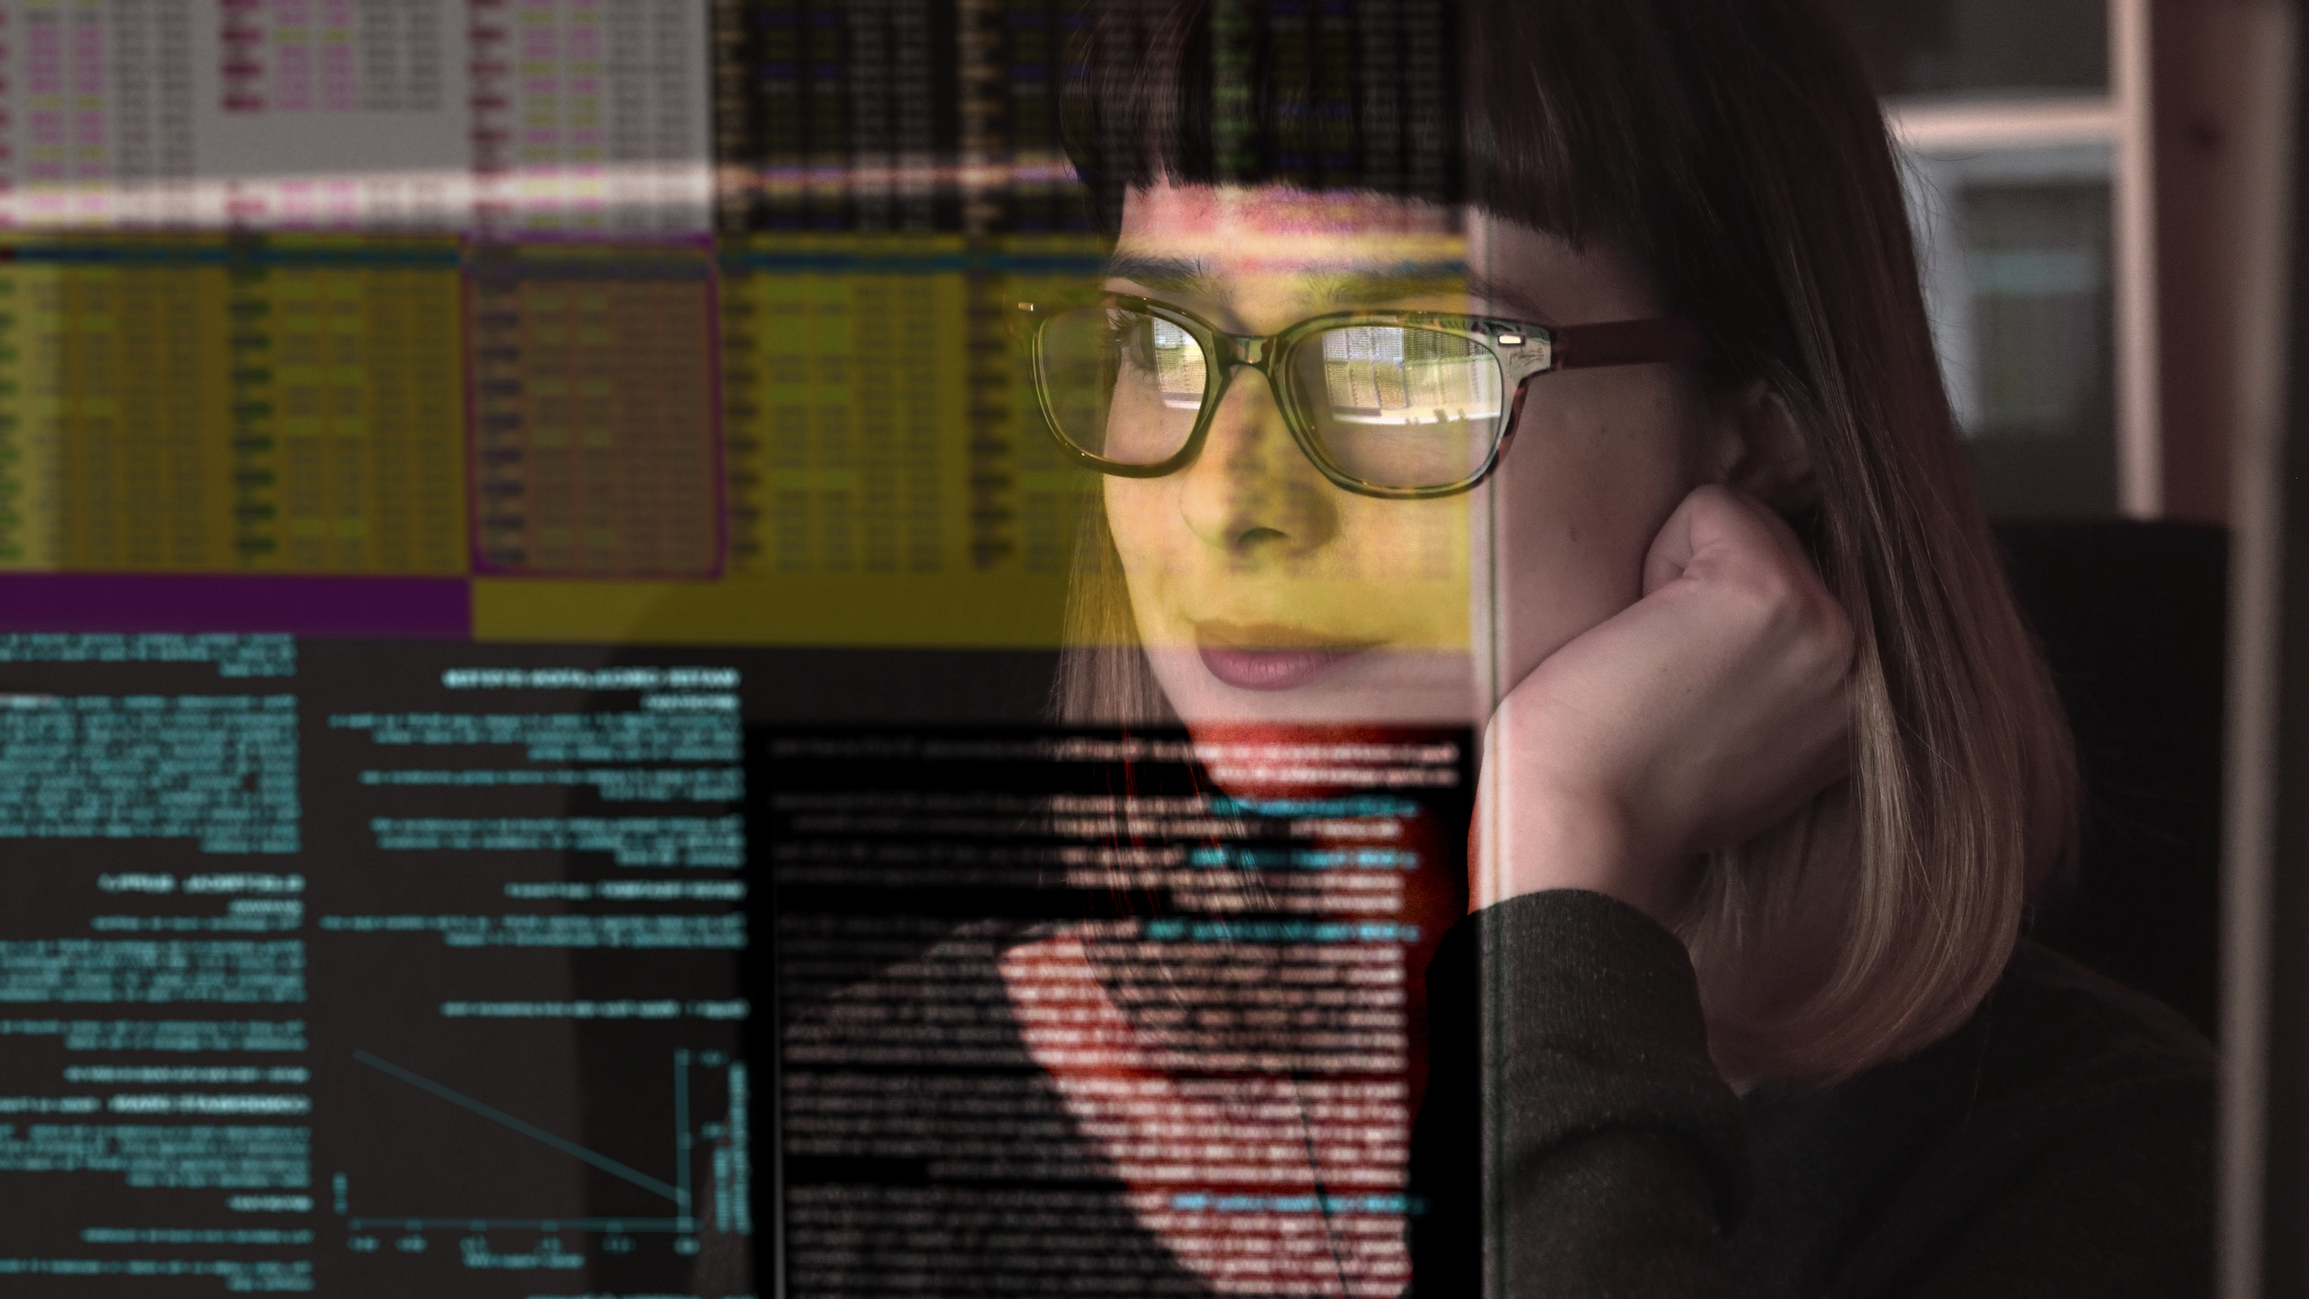 Lady with glasses looking at computer screen